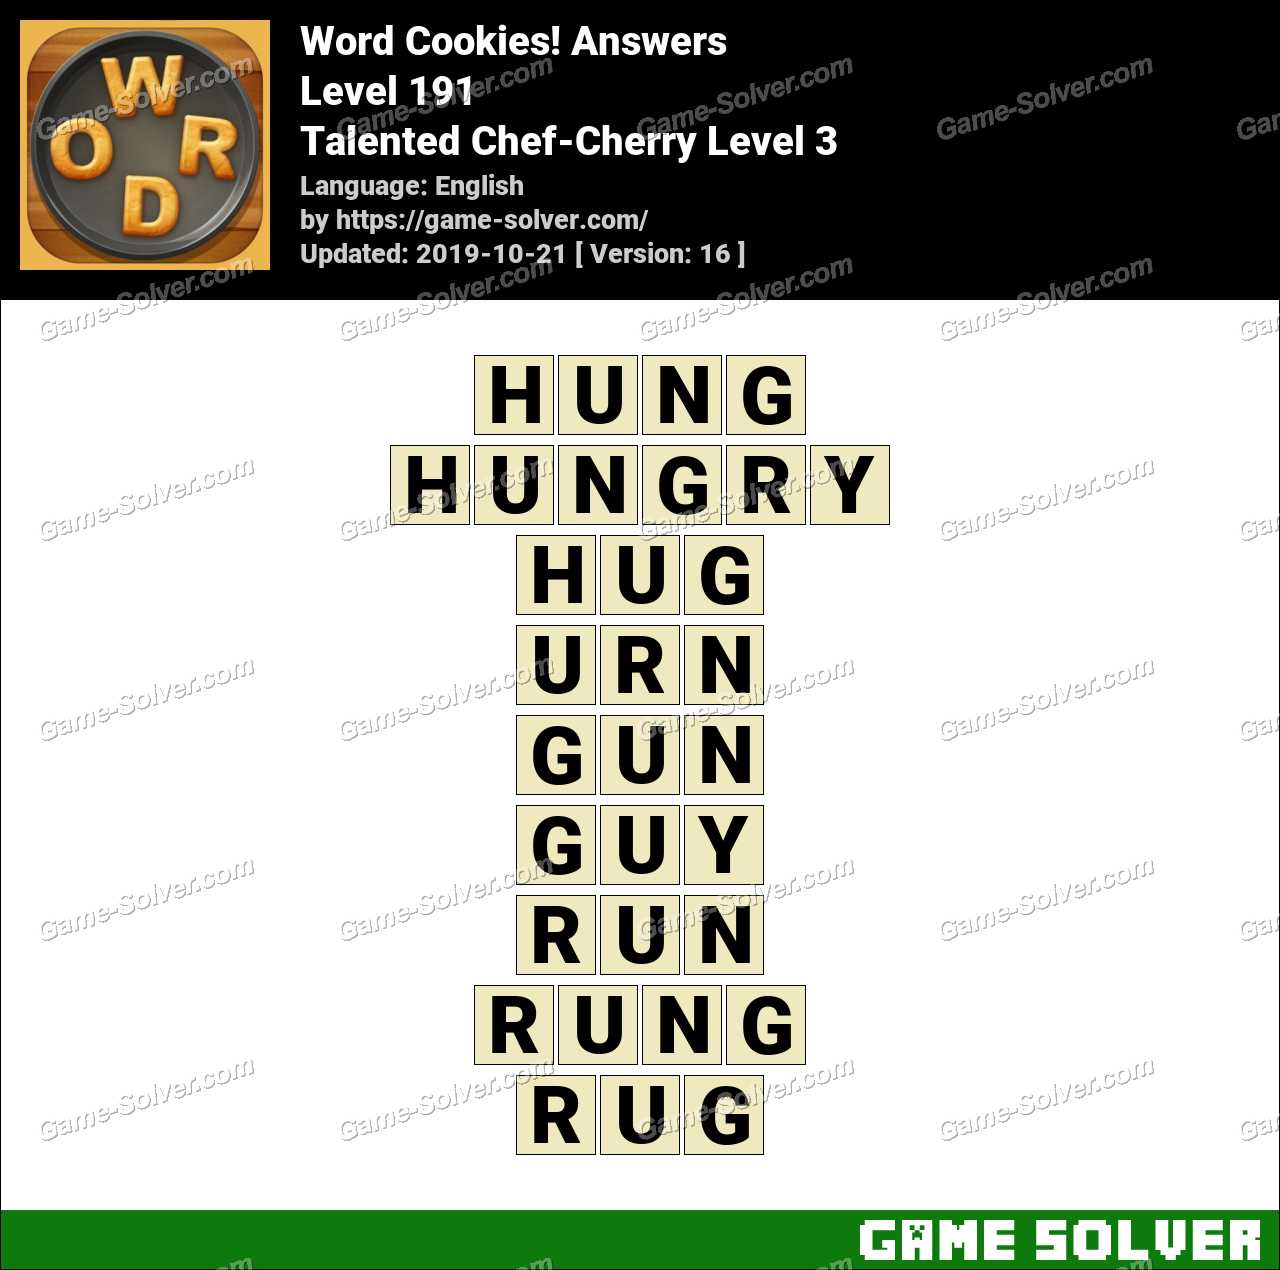 Word Cookies Talented Chef-Cherry Level 3 Answers